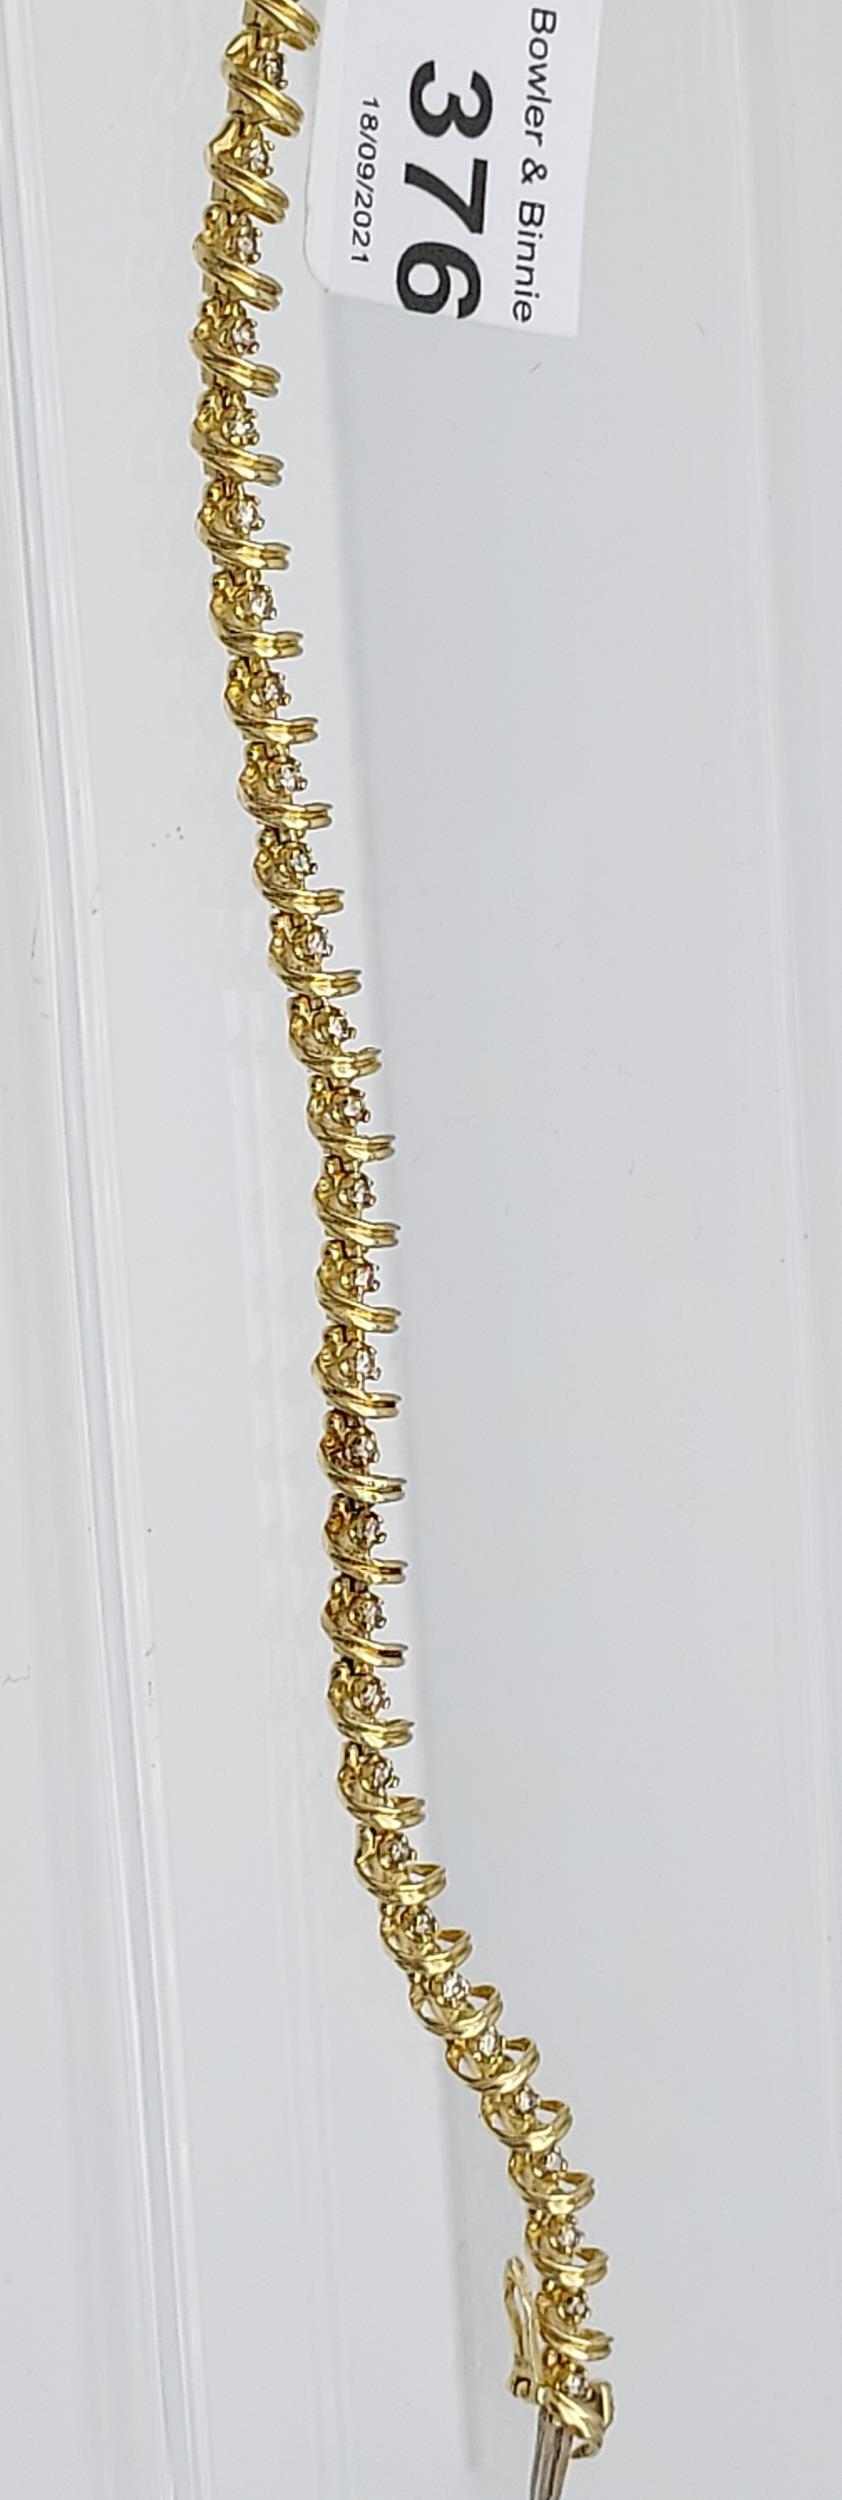 A 14ct yellow gold bracelet made up of 32 diamond panels [1ct approx] [9.58g] - Image 2 of 6